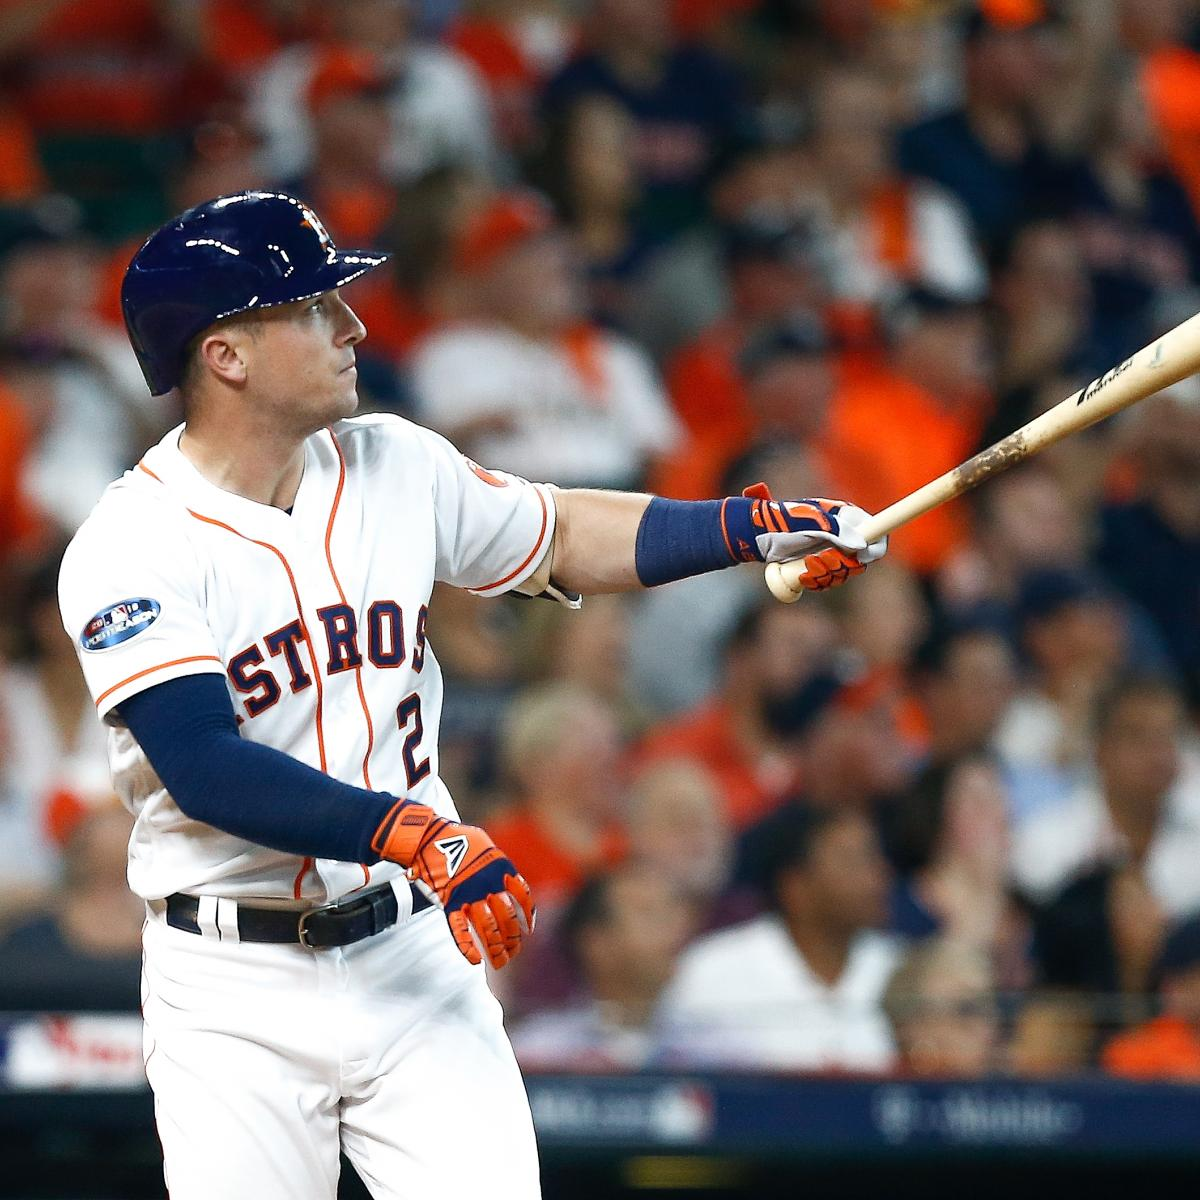 Ranking MLB s 25 Best Players Under 25 Entering the 2019 Season ... 8ca74b703